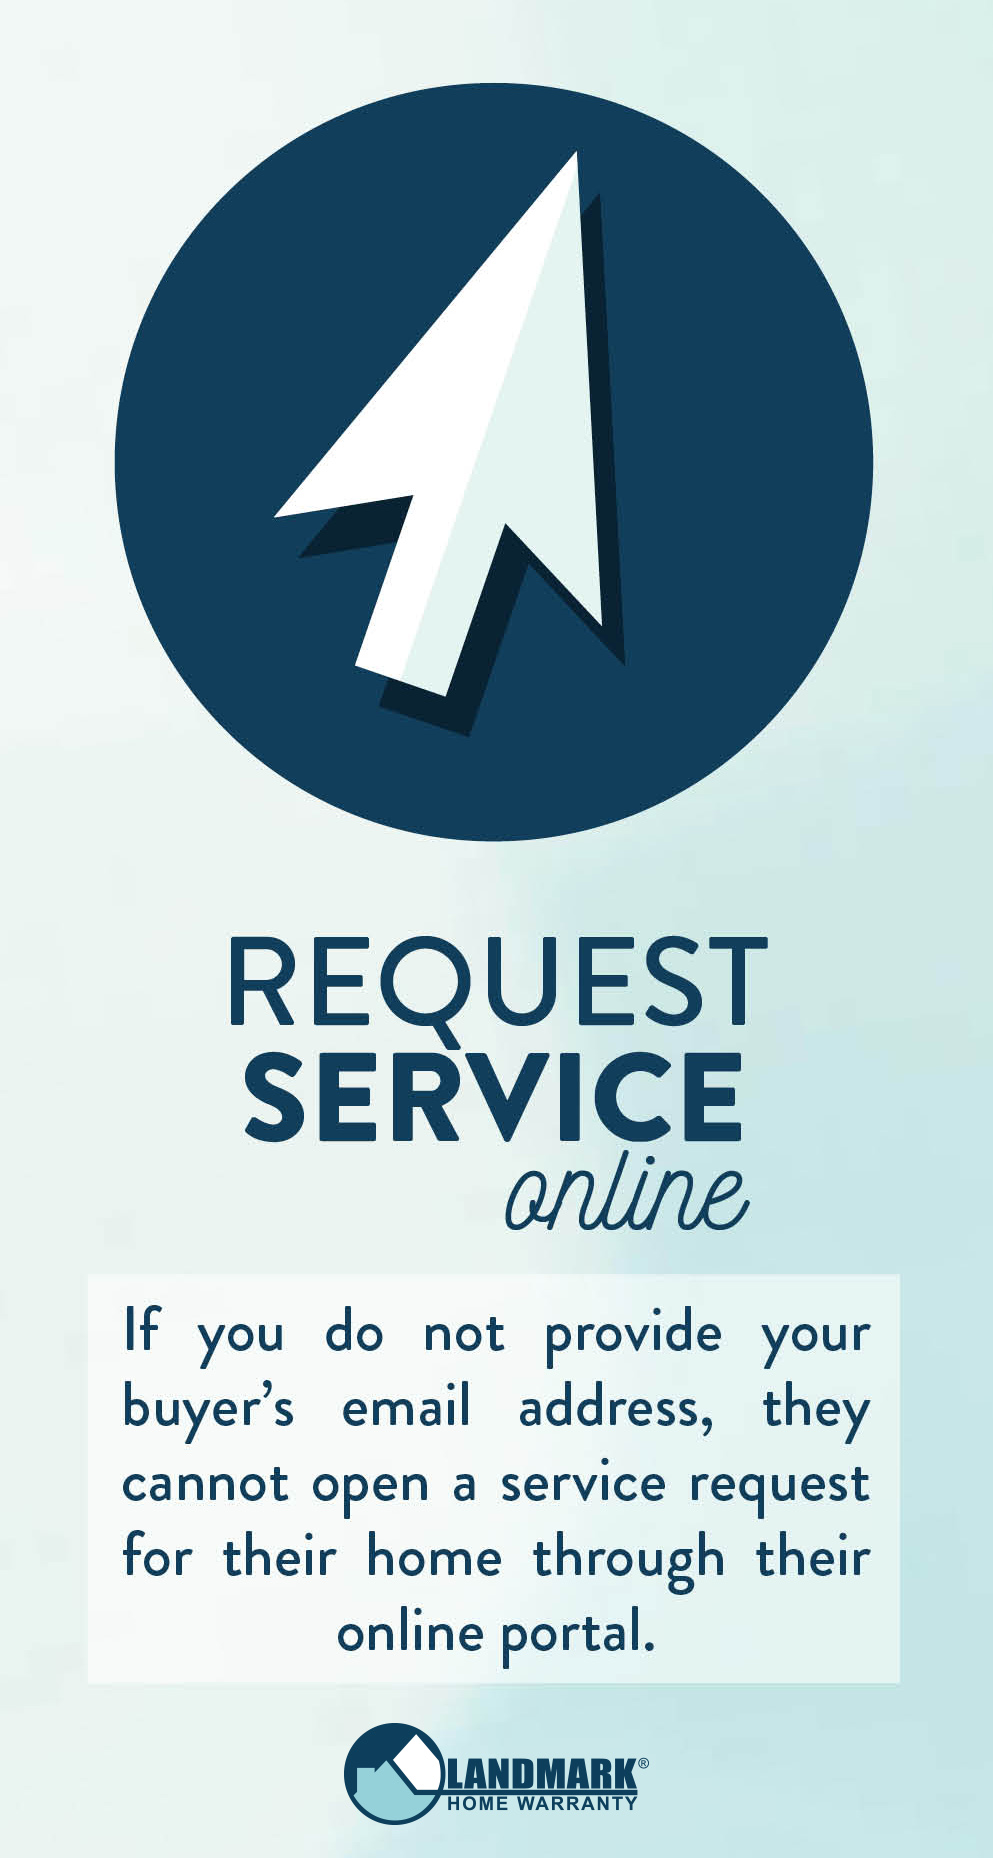 Without an email, homeowners cannot open a home warranty service request online.